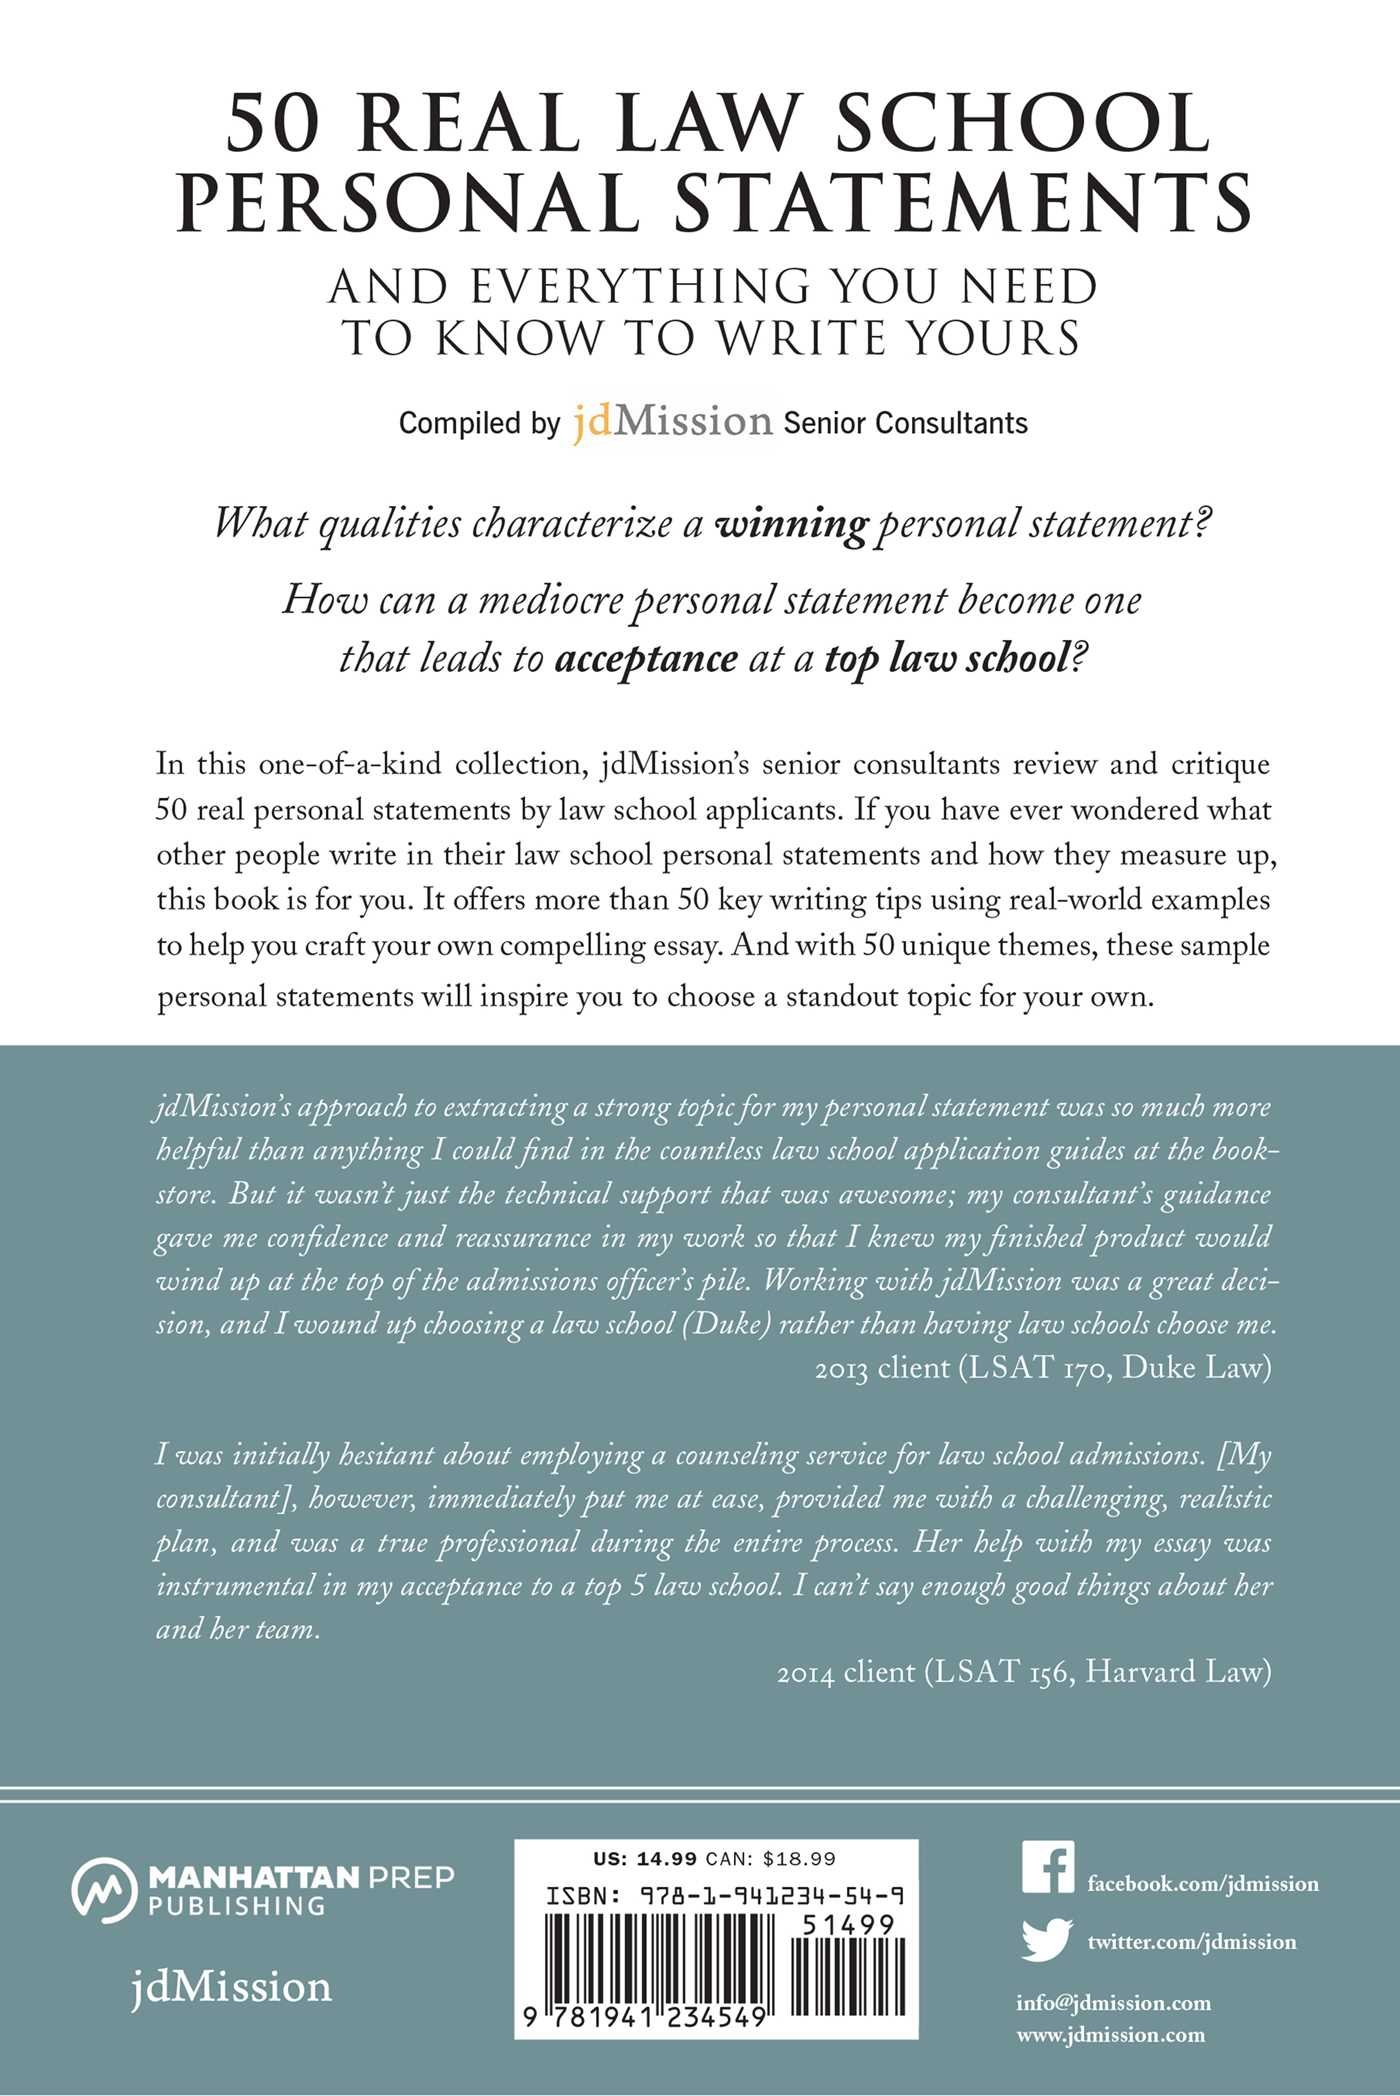 50 real law school personal statements and everything you need to know to write yours manhattan prep lsat strategy guides jdmission senior consultants - Law School Essay Examples